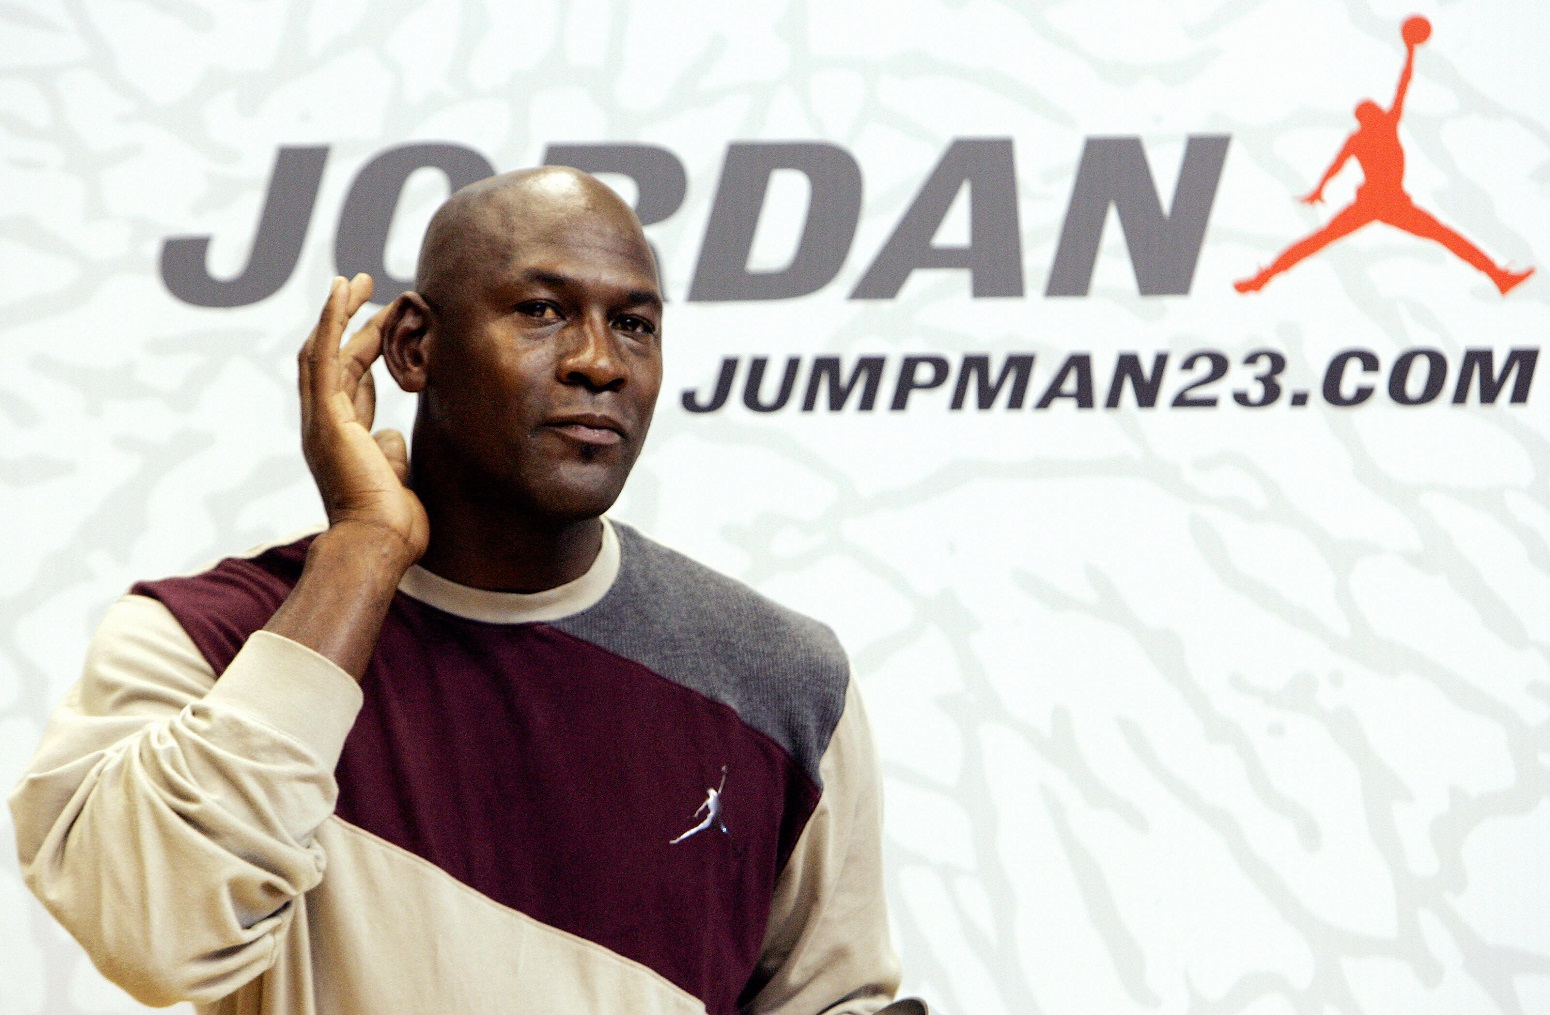 Michael Jordan's game almost killed a reporter